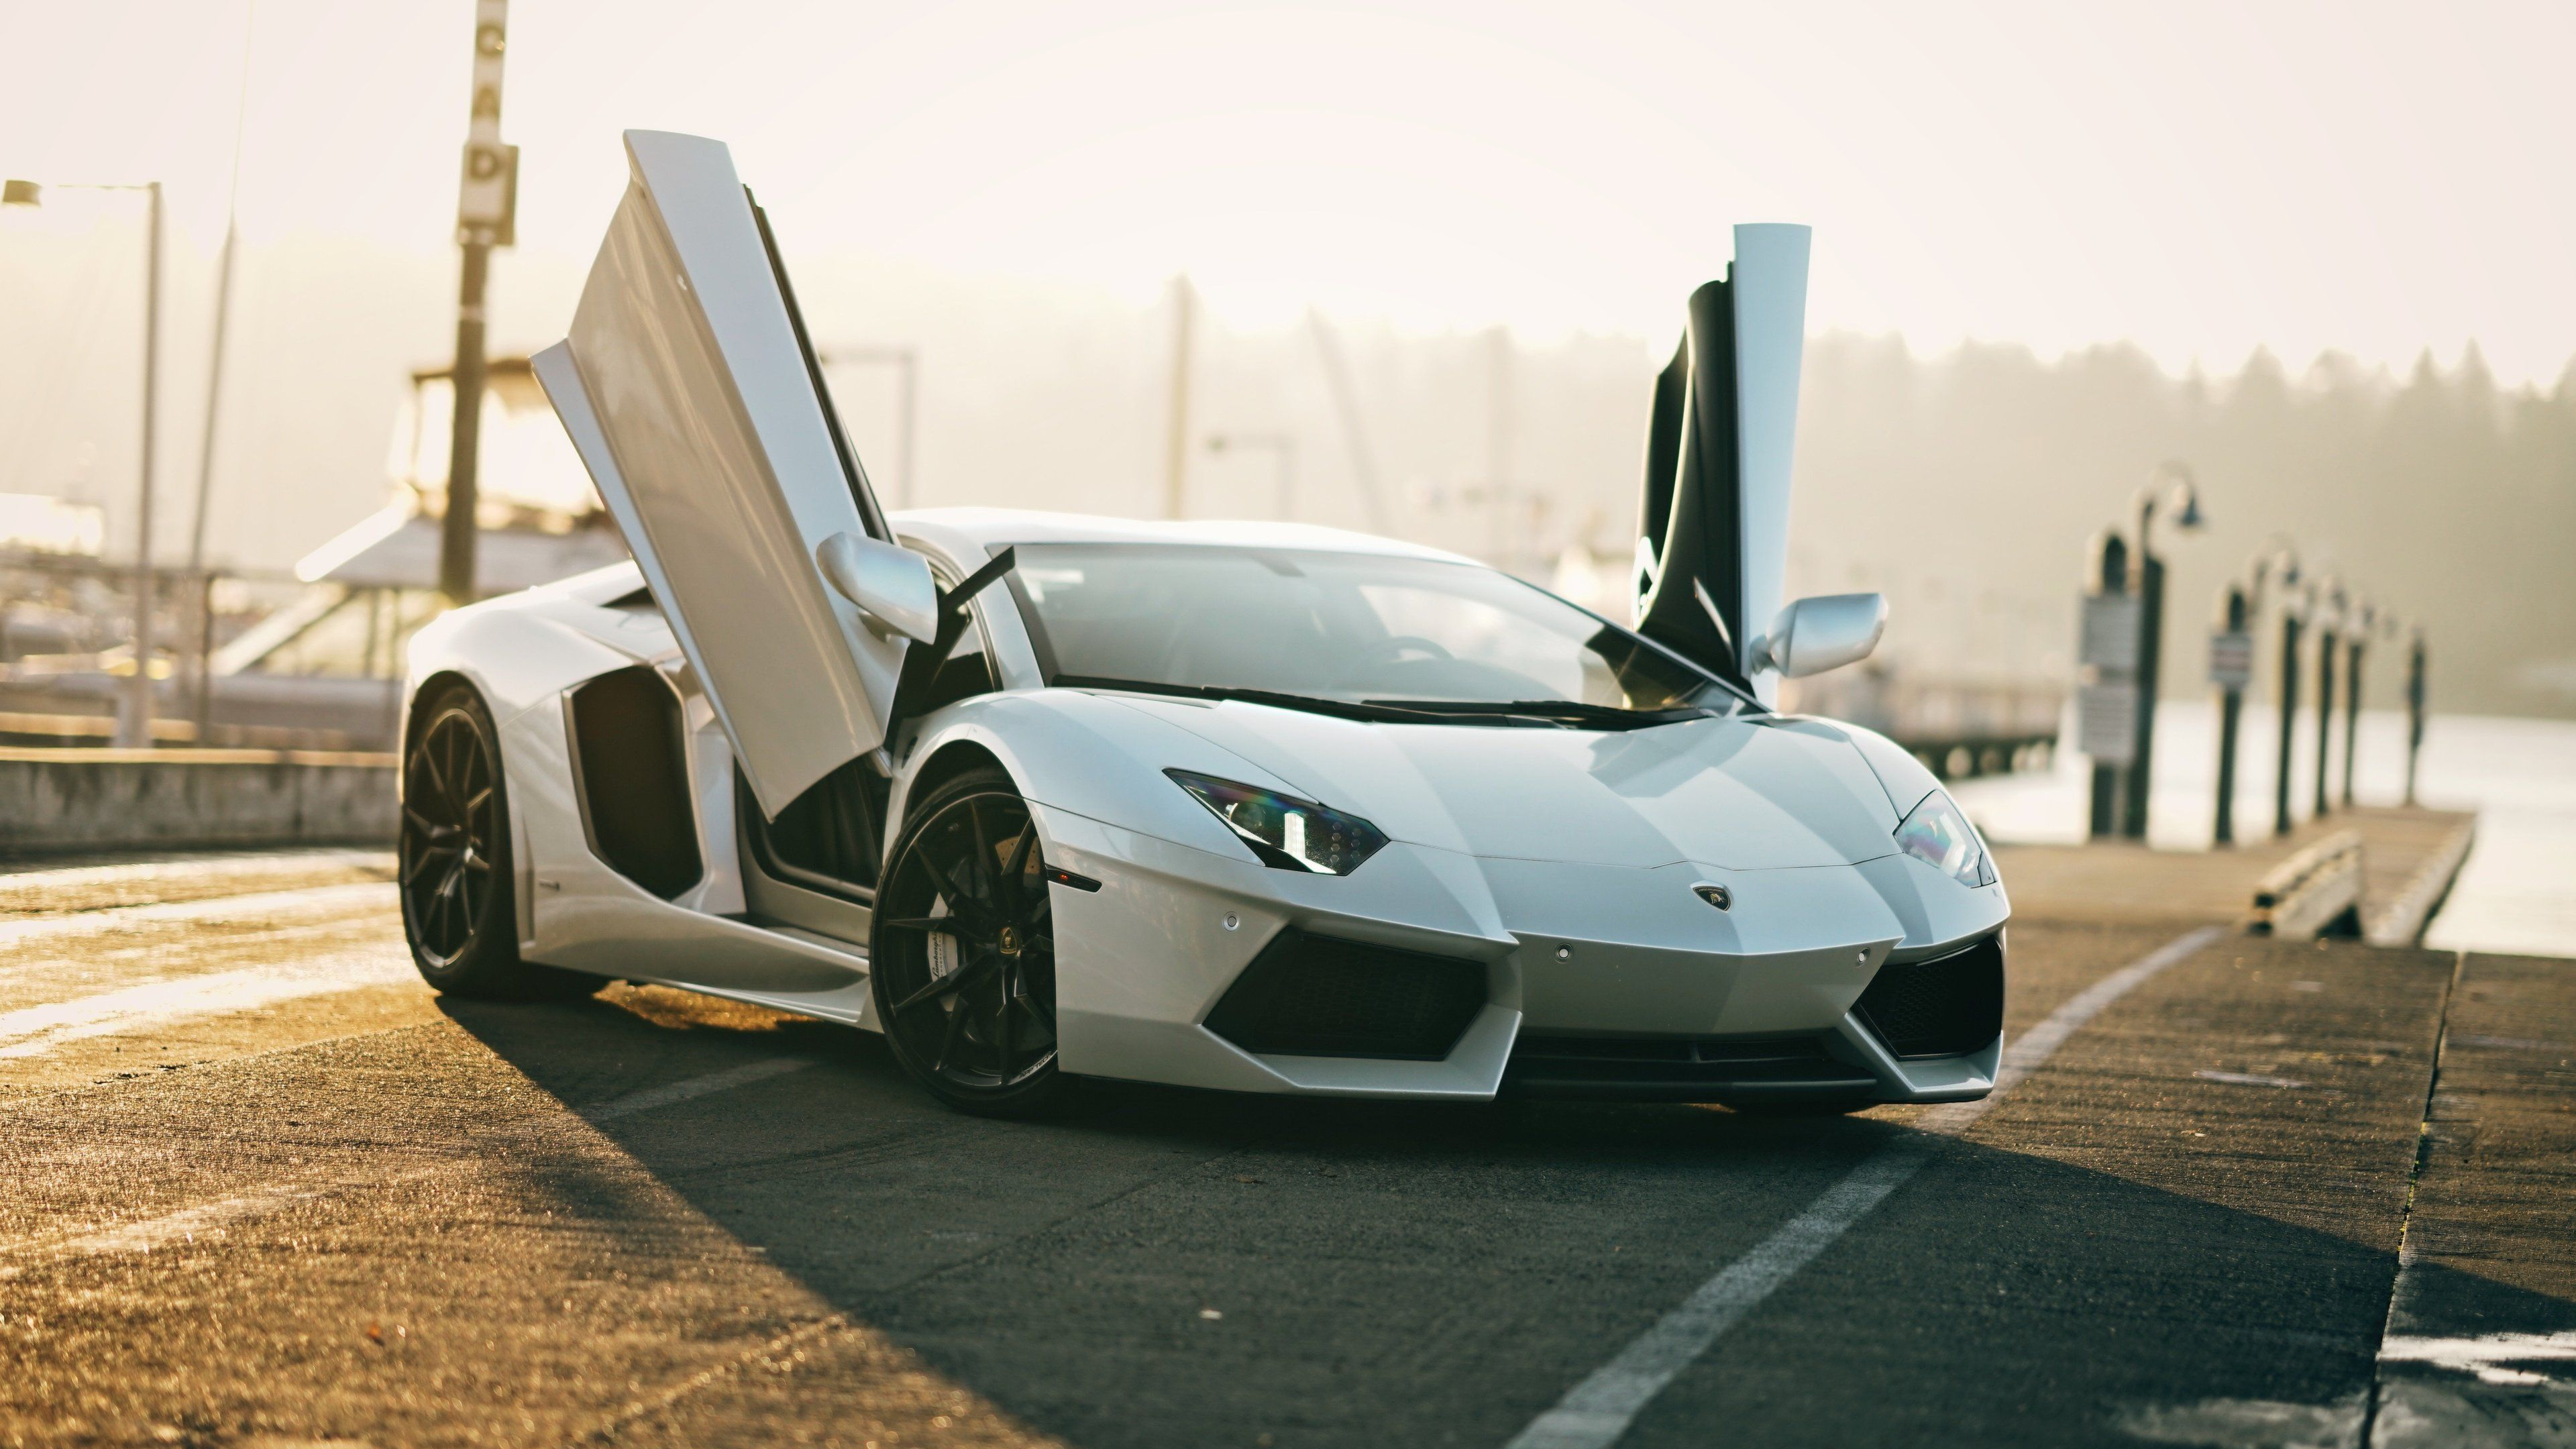 Wallpaper 4k 4k White Lamborghini Aventador 4k Wallpapers Cars